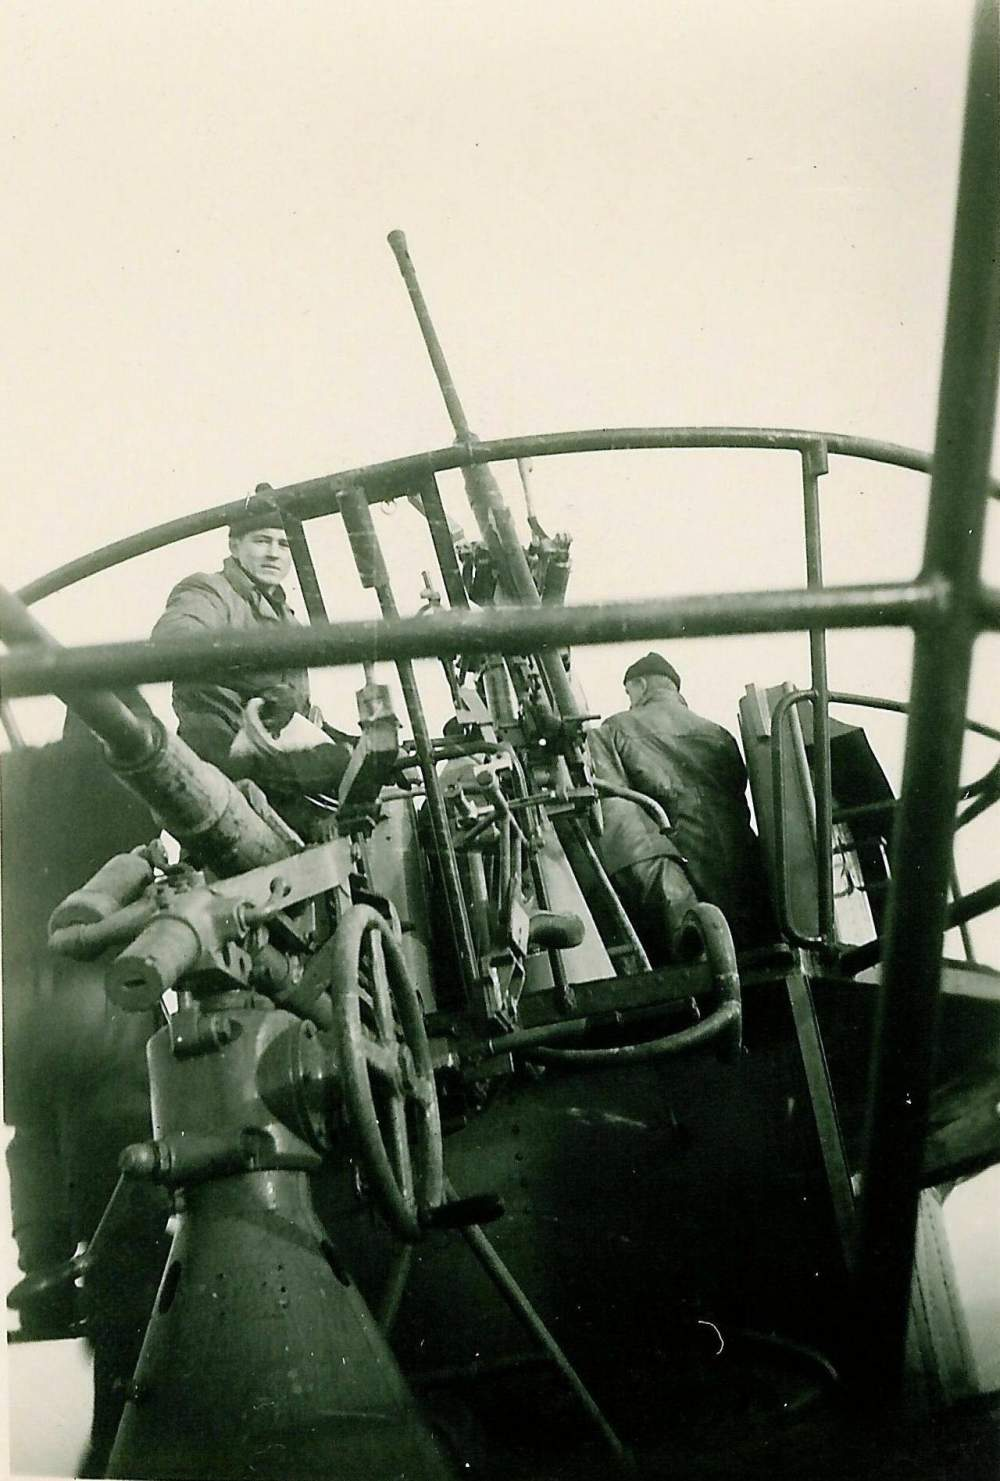 37mm and 20mm anti-aircraft cannon on a Type VIIC U-Boat.